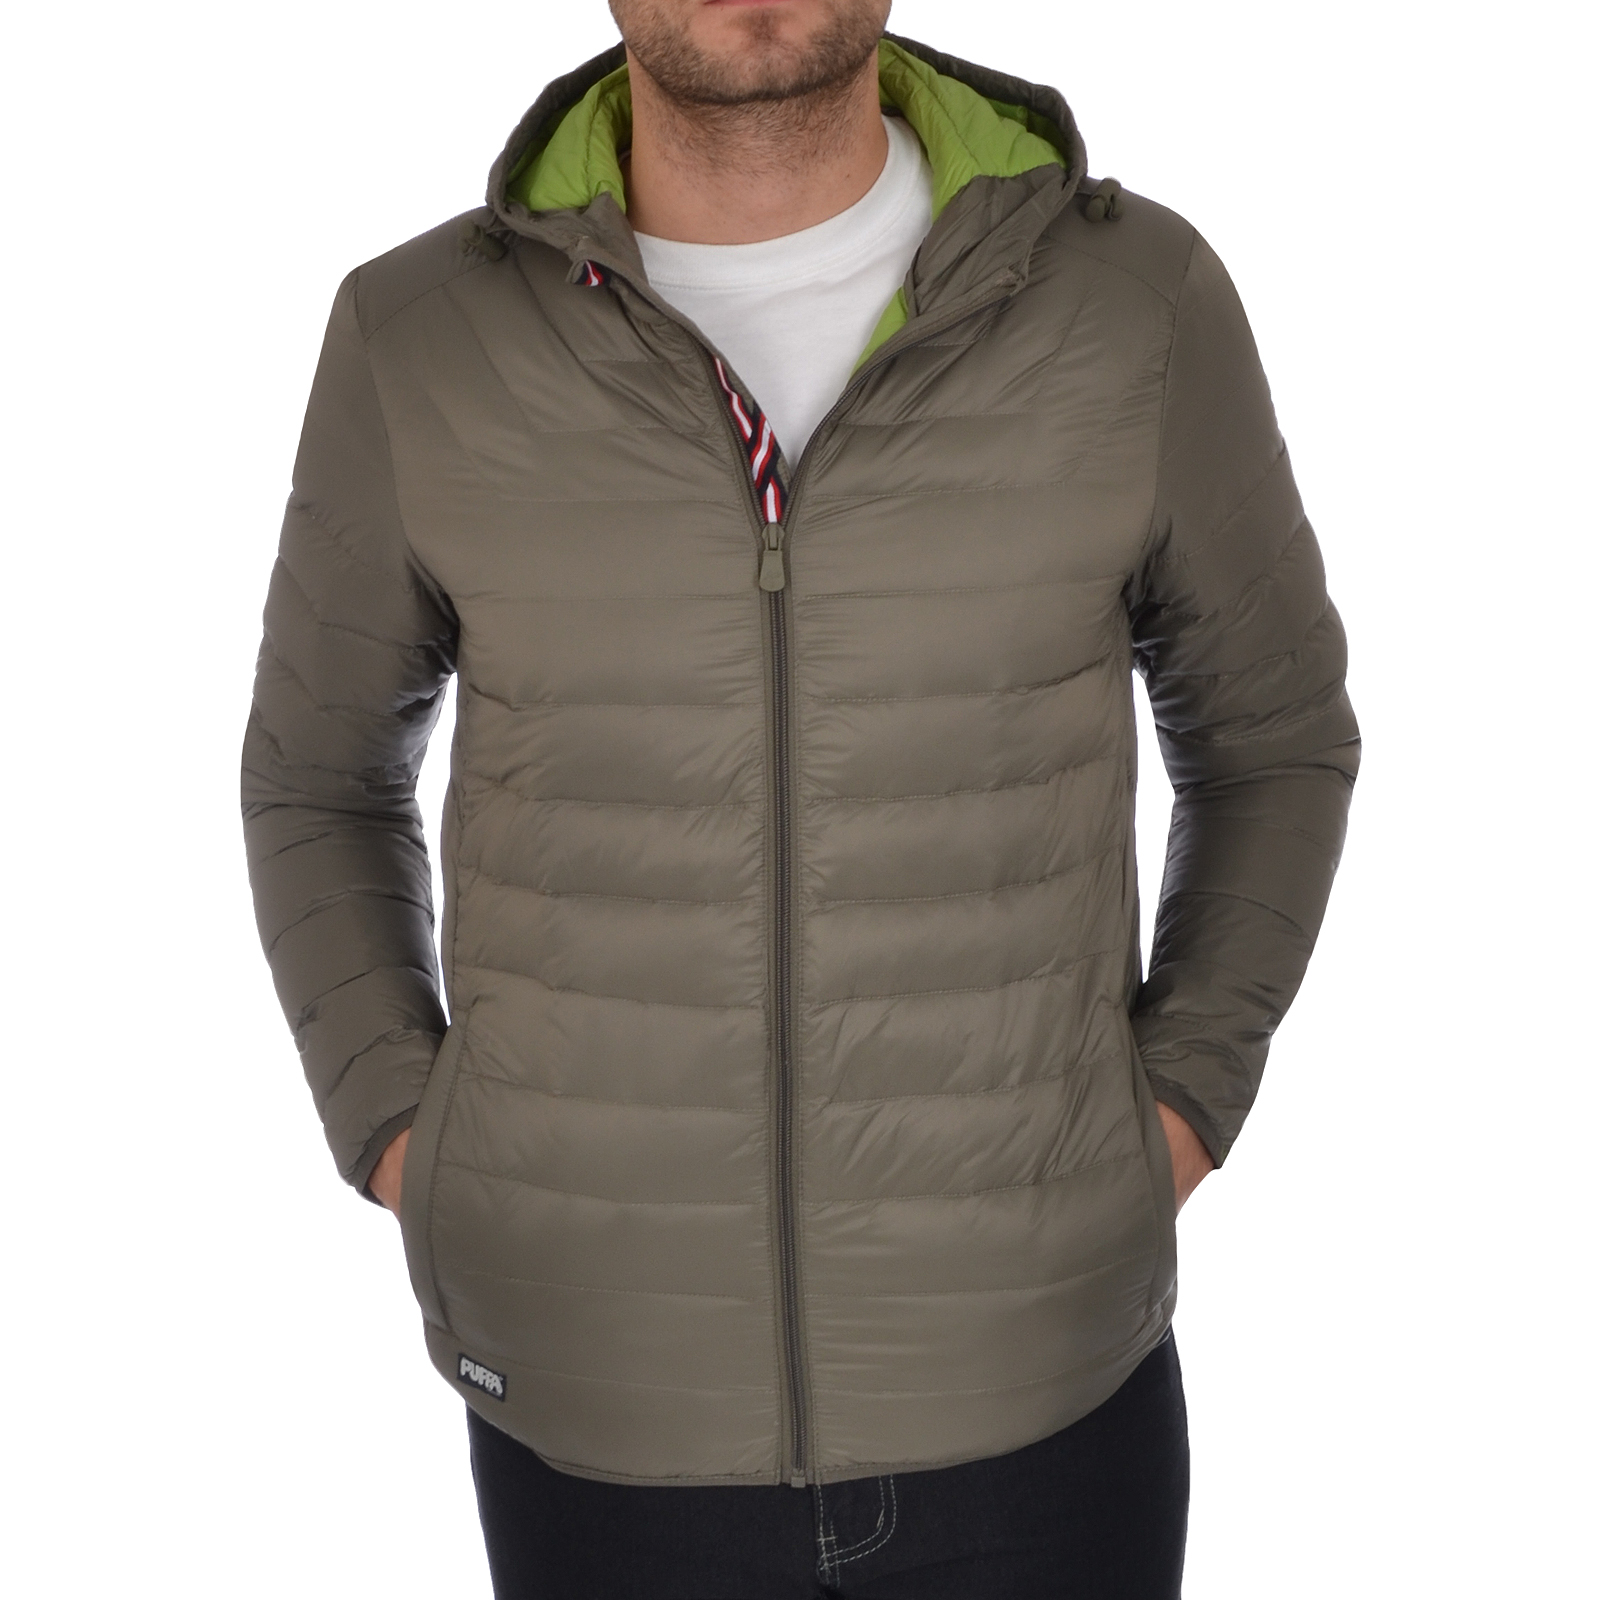 Apr 22,  · The jackets with few features, lightweight fabric, and high fill-power down compressed the most, while the jackets with heavy and bulky face fabrics or low fill-power down .